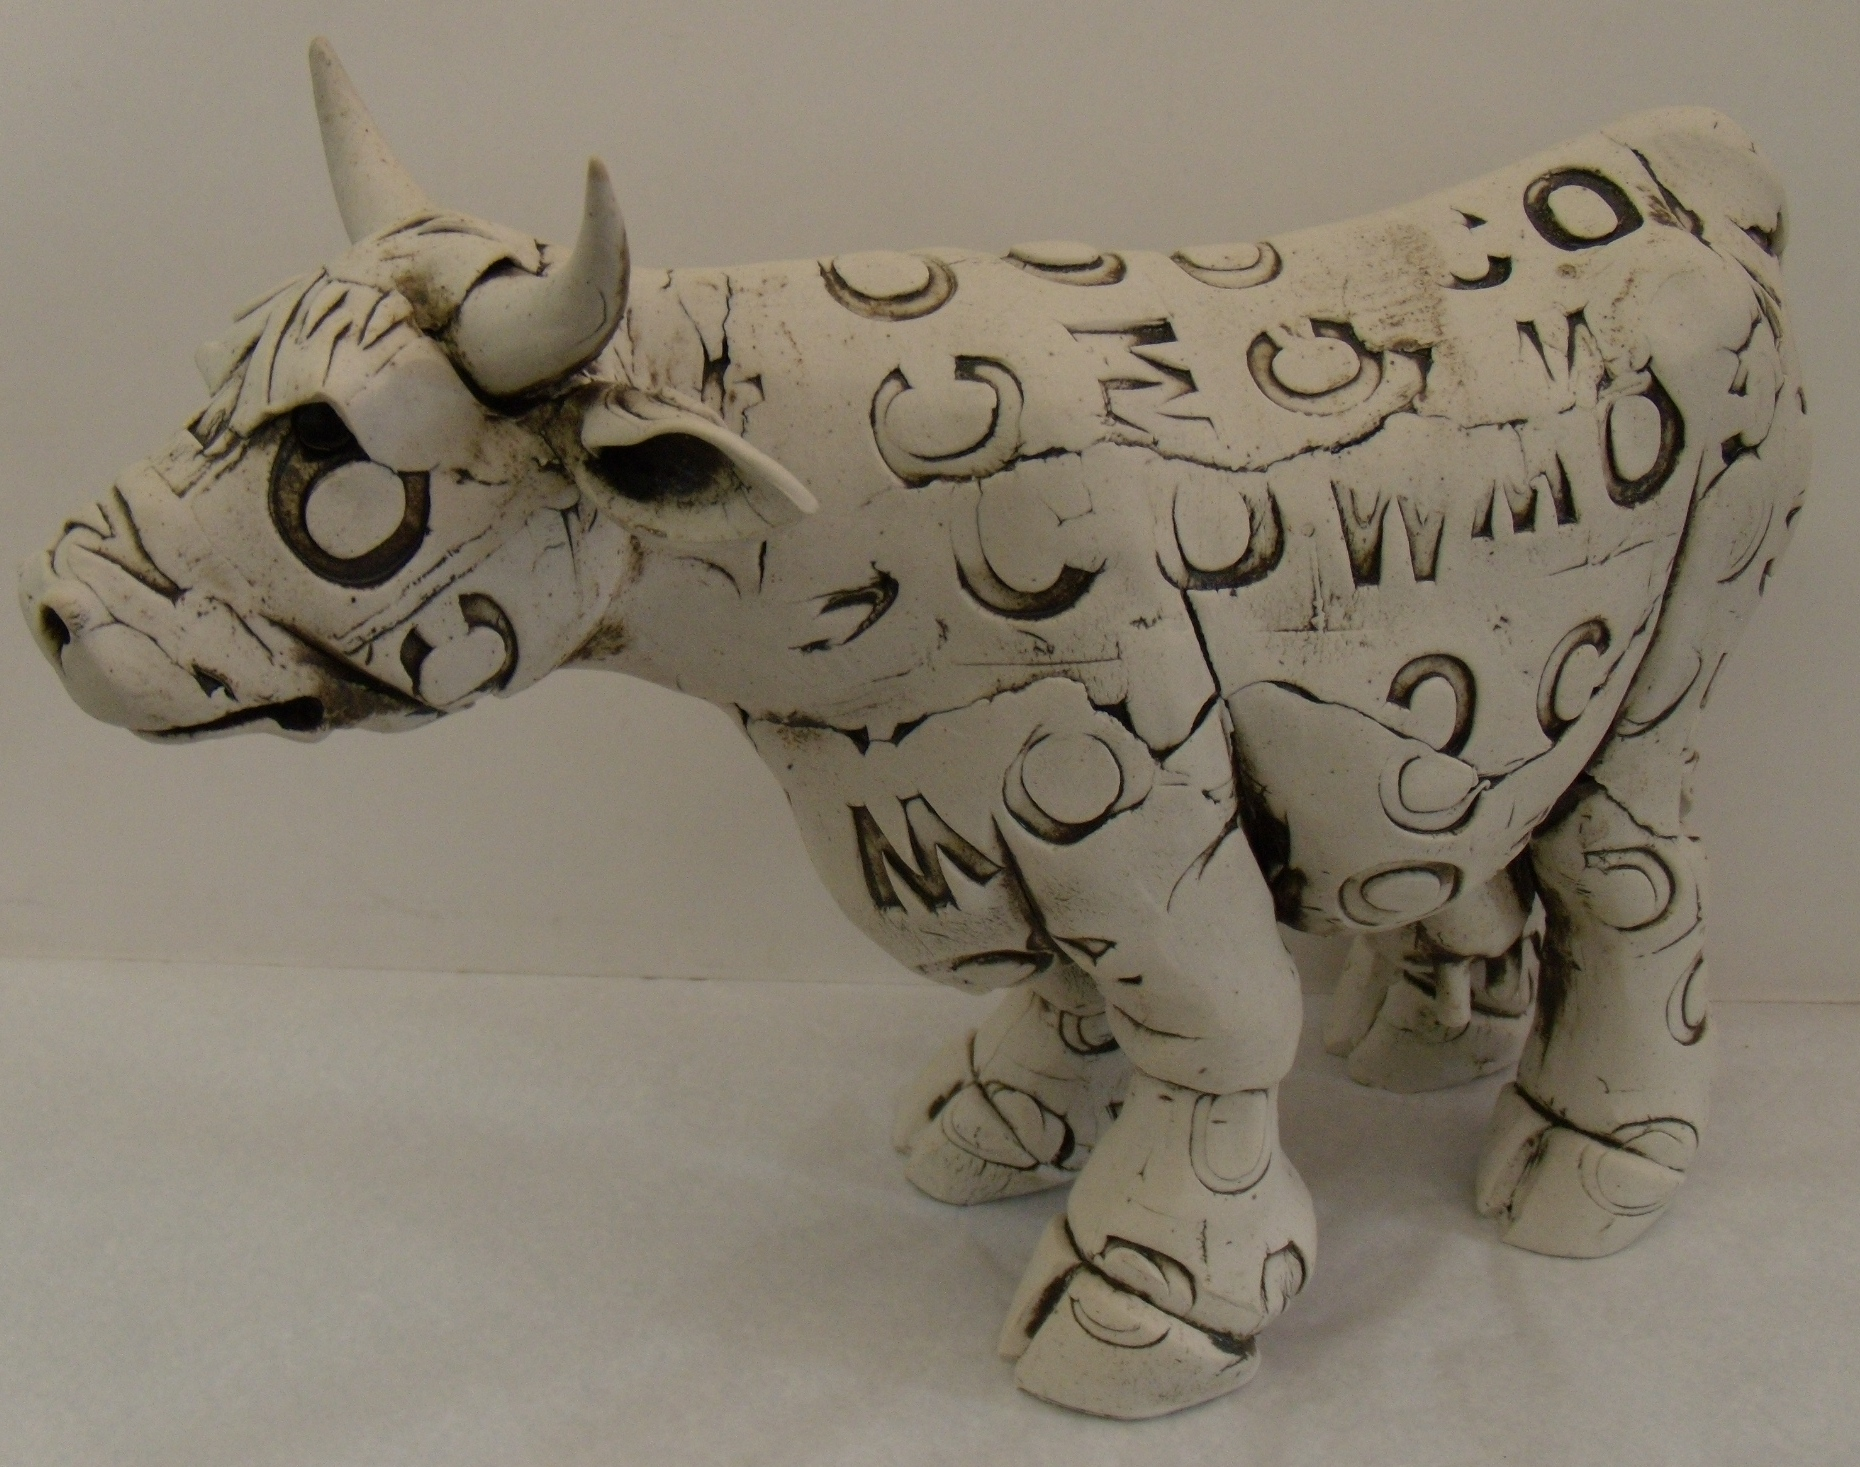 Cow $310 Measures approx 380 mm w x 280 mm h